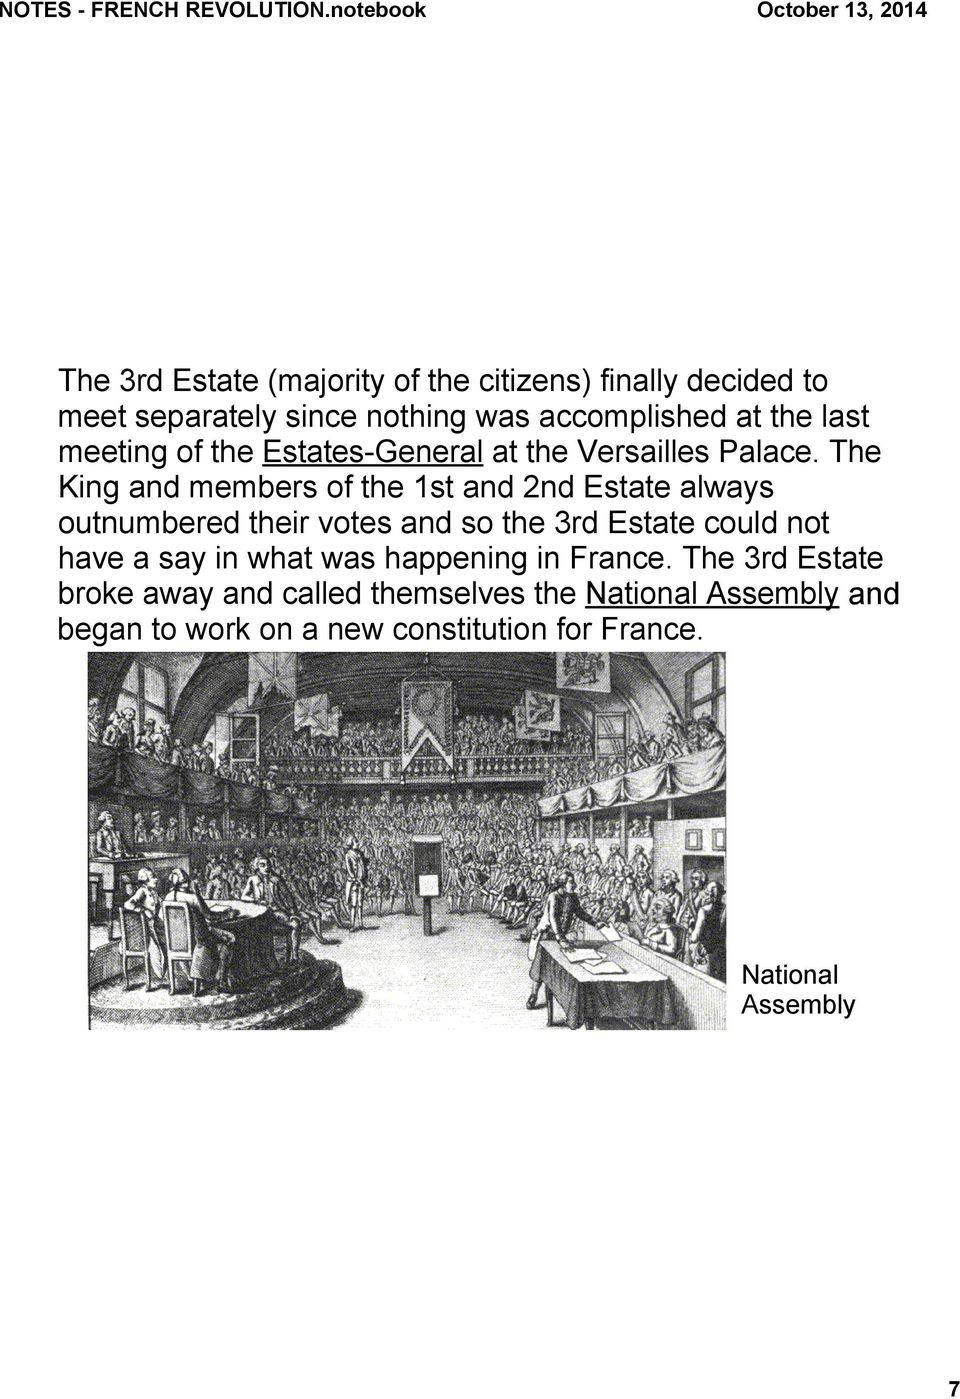 The King and members of the 1st and 2nd Estate always outnumbered their votes and so the 3rd Estate could not have a